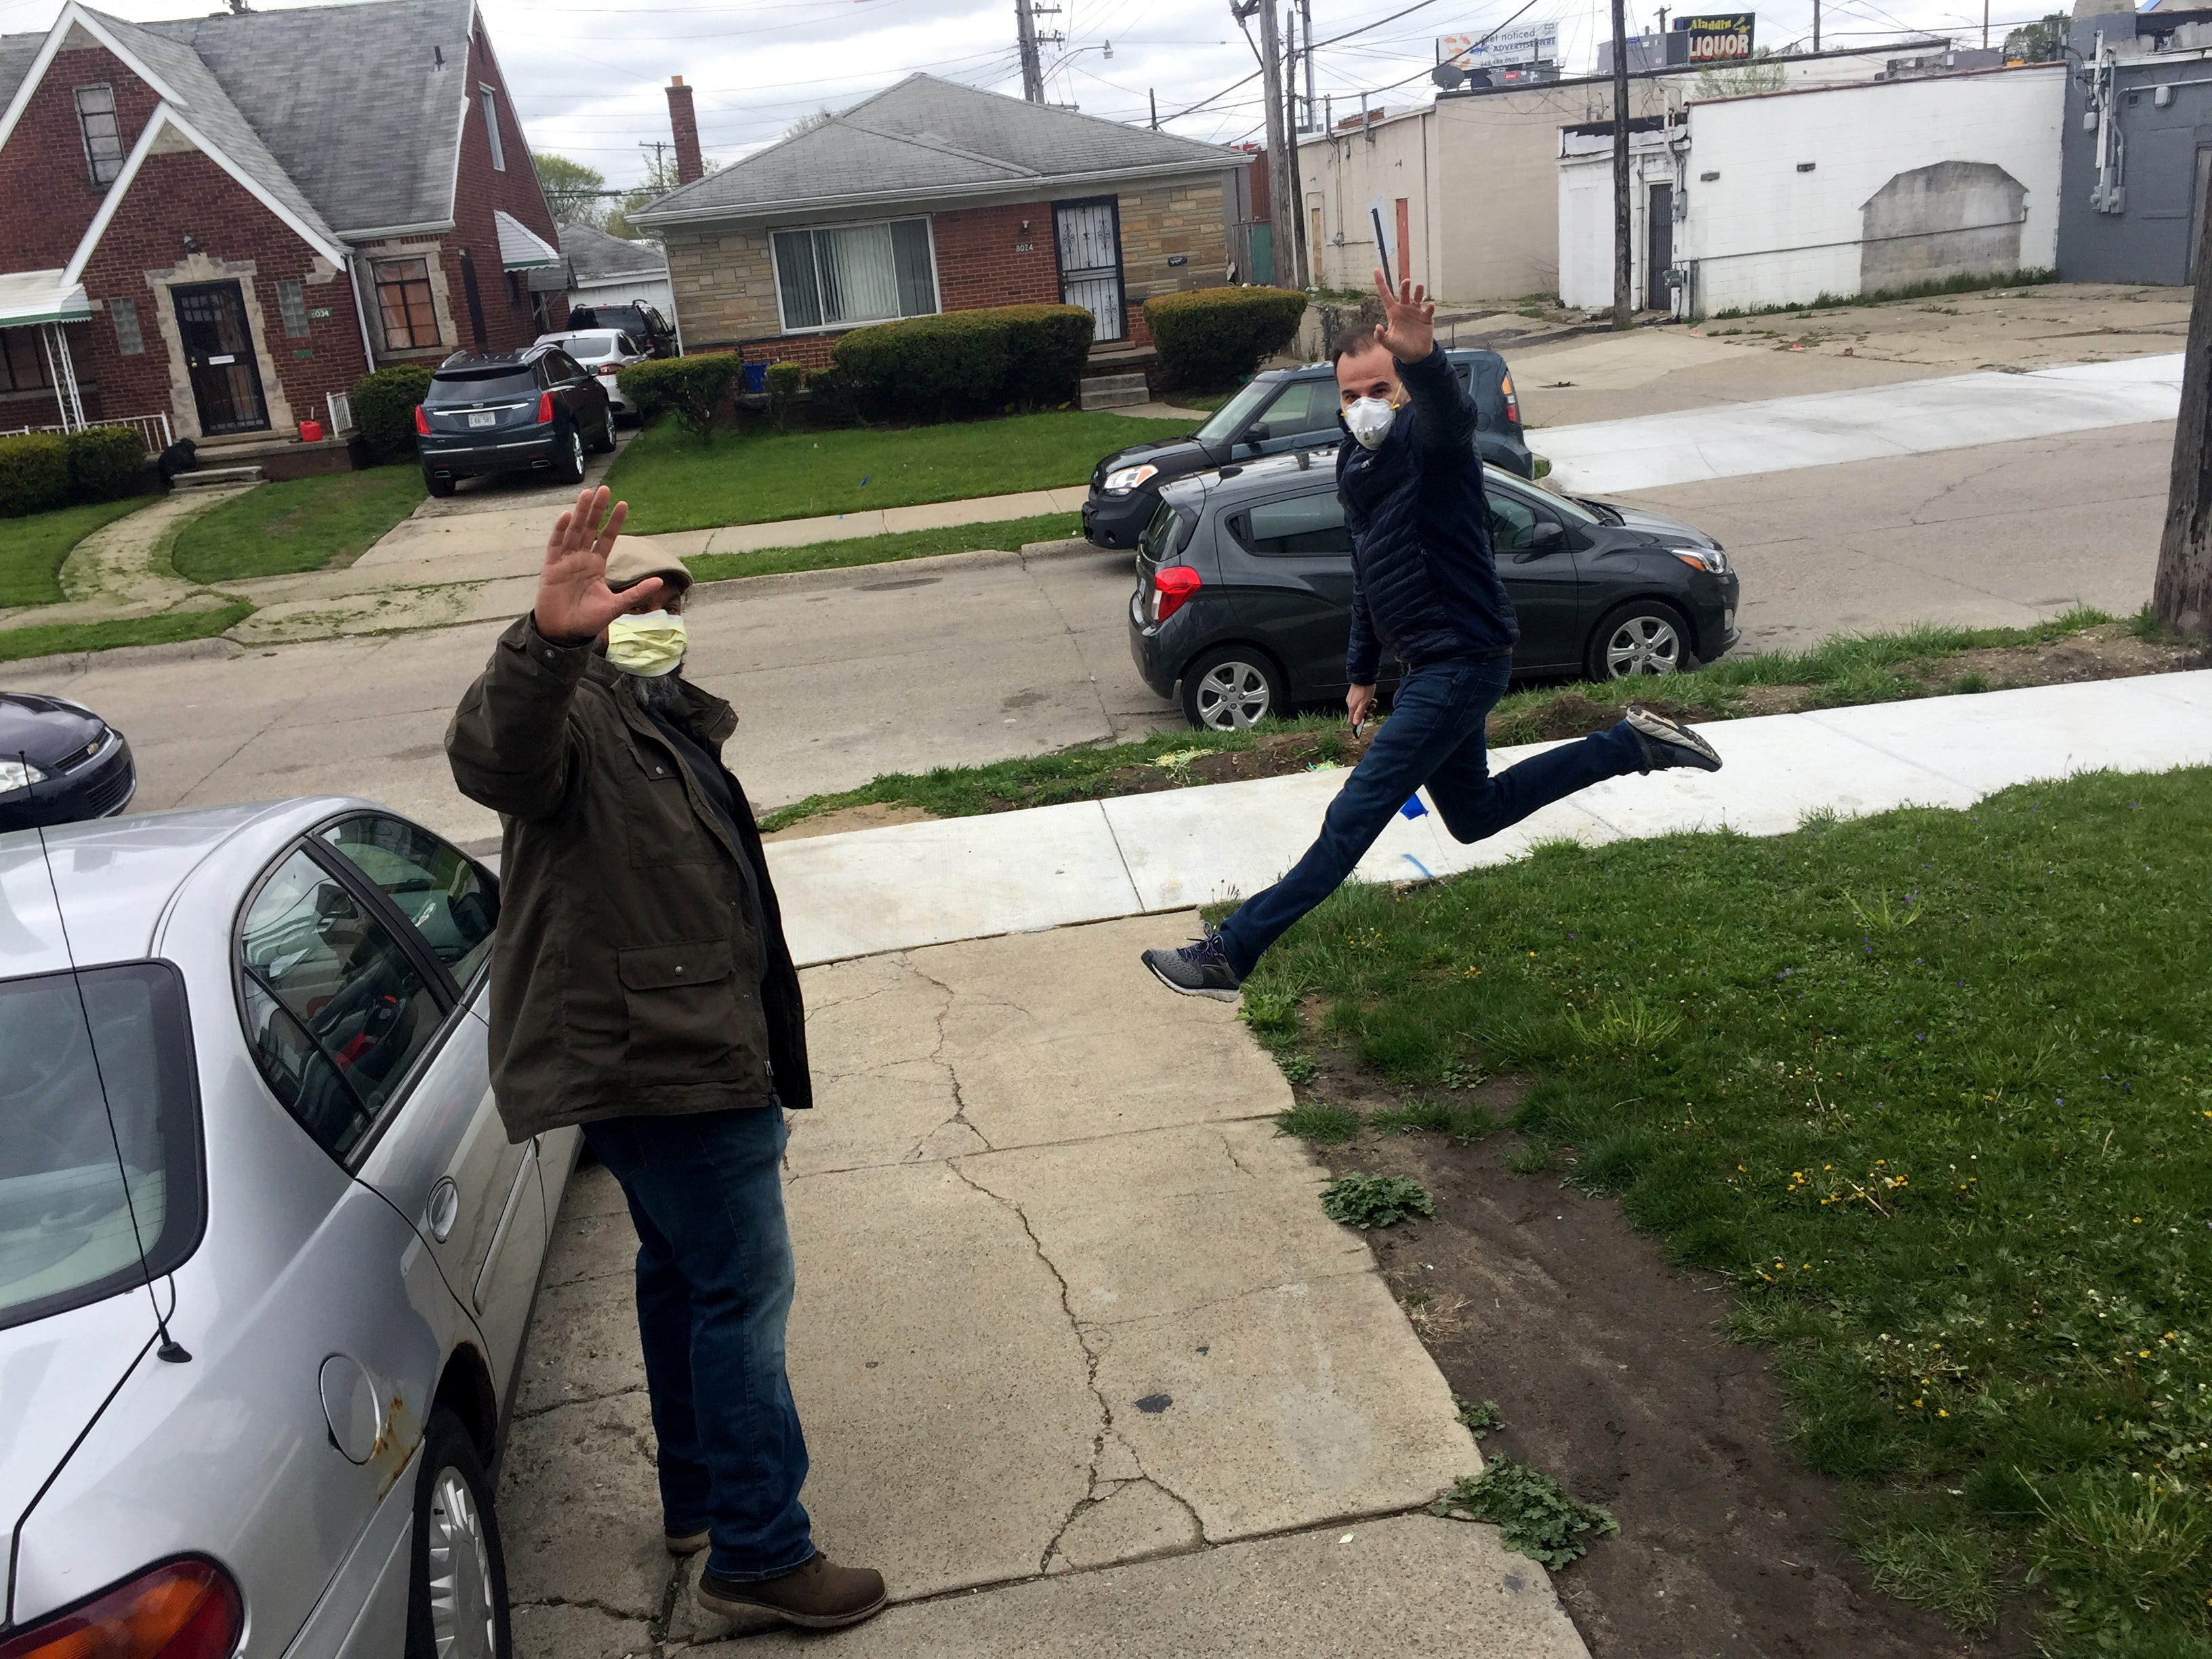 Capturing Belief co-founders Khary Mason, left, and Romain Blanquart, right,  wave goodbye to Dejuan McCurrie, 13, after visiting him at home on Detroit's east side on May 11, 2020. Dejuan has been attending Capturing Belief for a couple years but since the COVID-19 pandemic started and in-person classes stopped he does not have access to a camera so his mentors dropped of one off for him to use during remote photography classes.